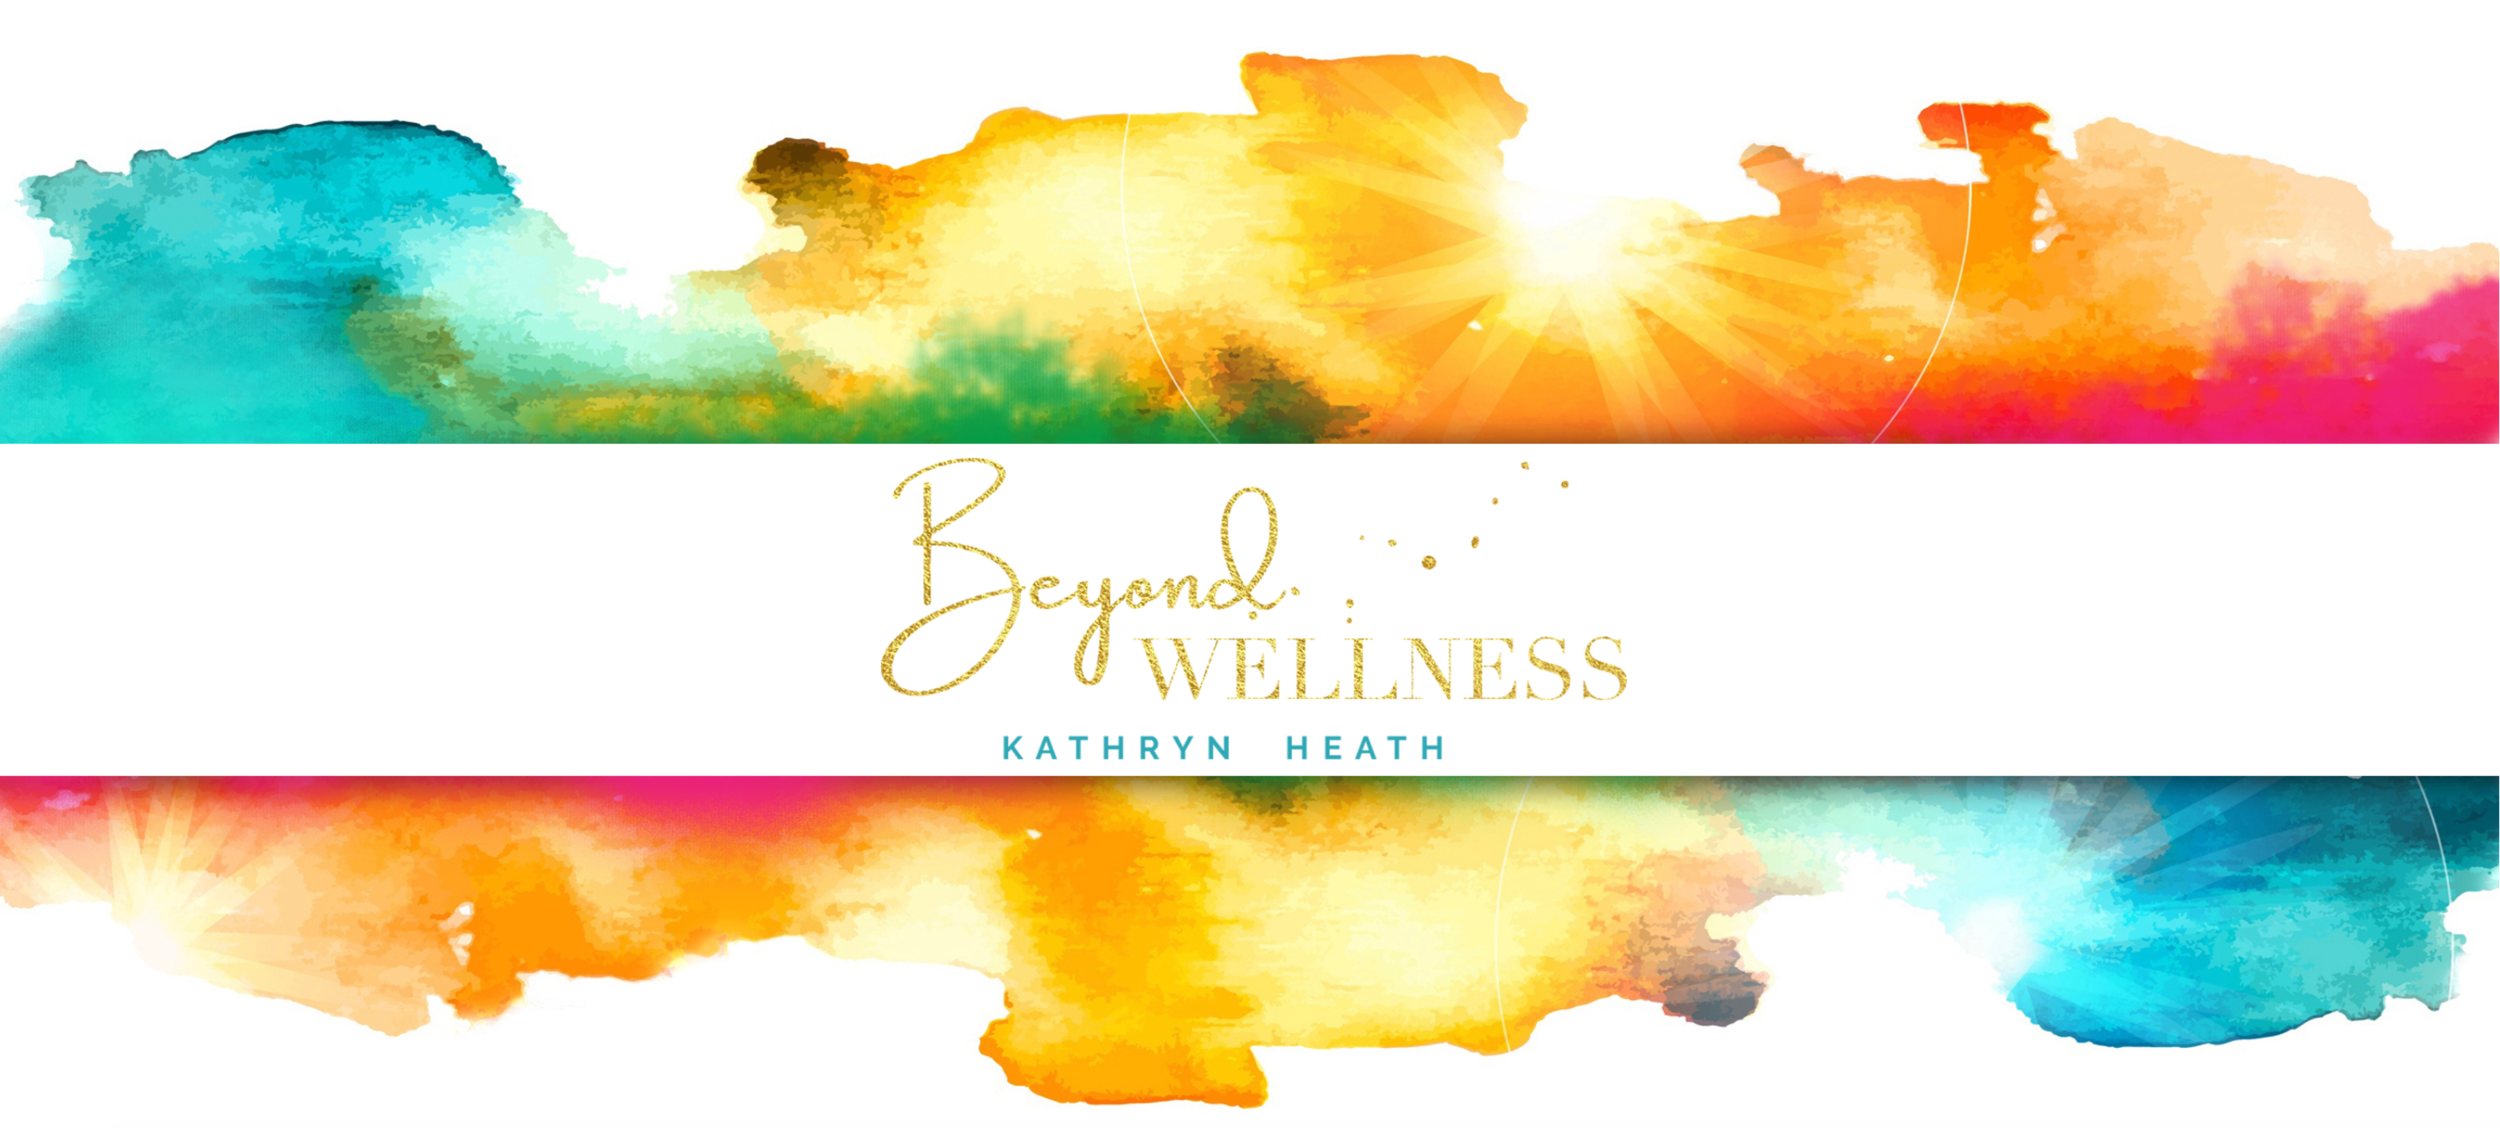 Kathryn-Heath_Beyobnd-Wellness.png